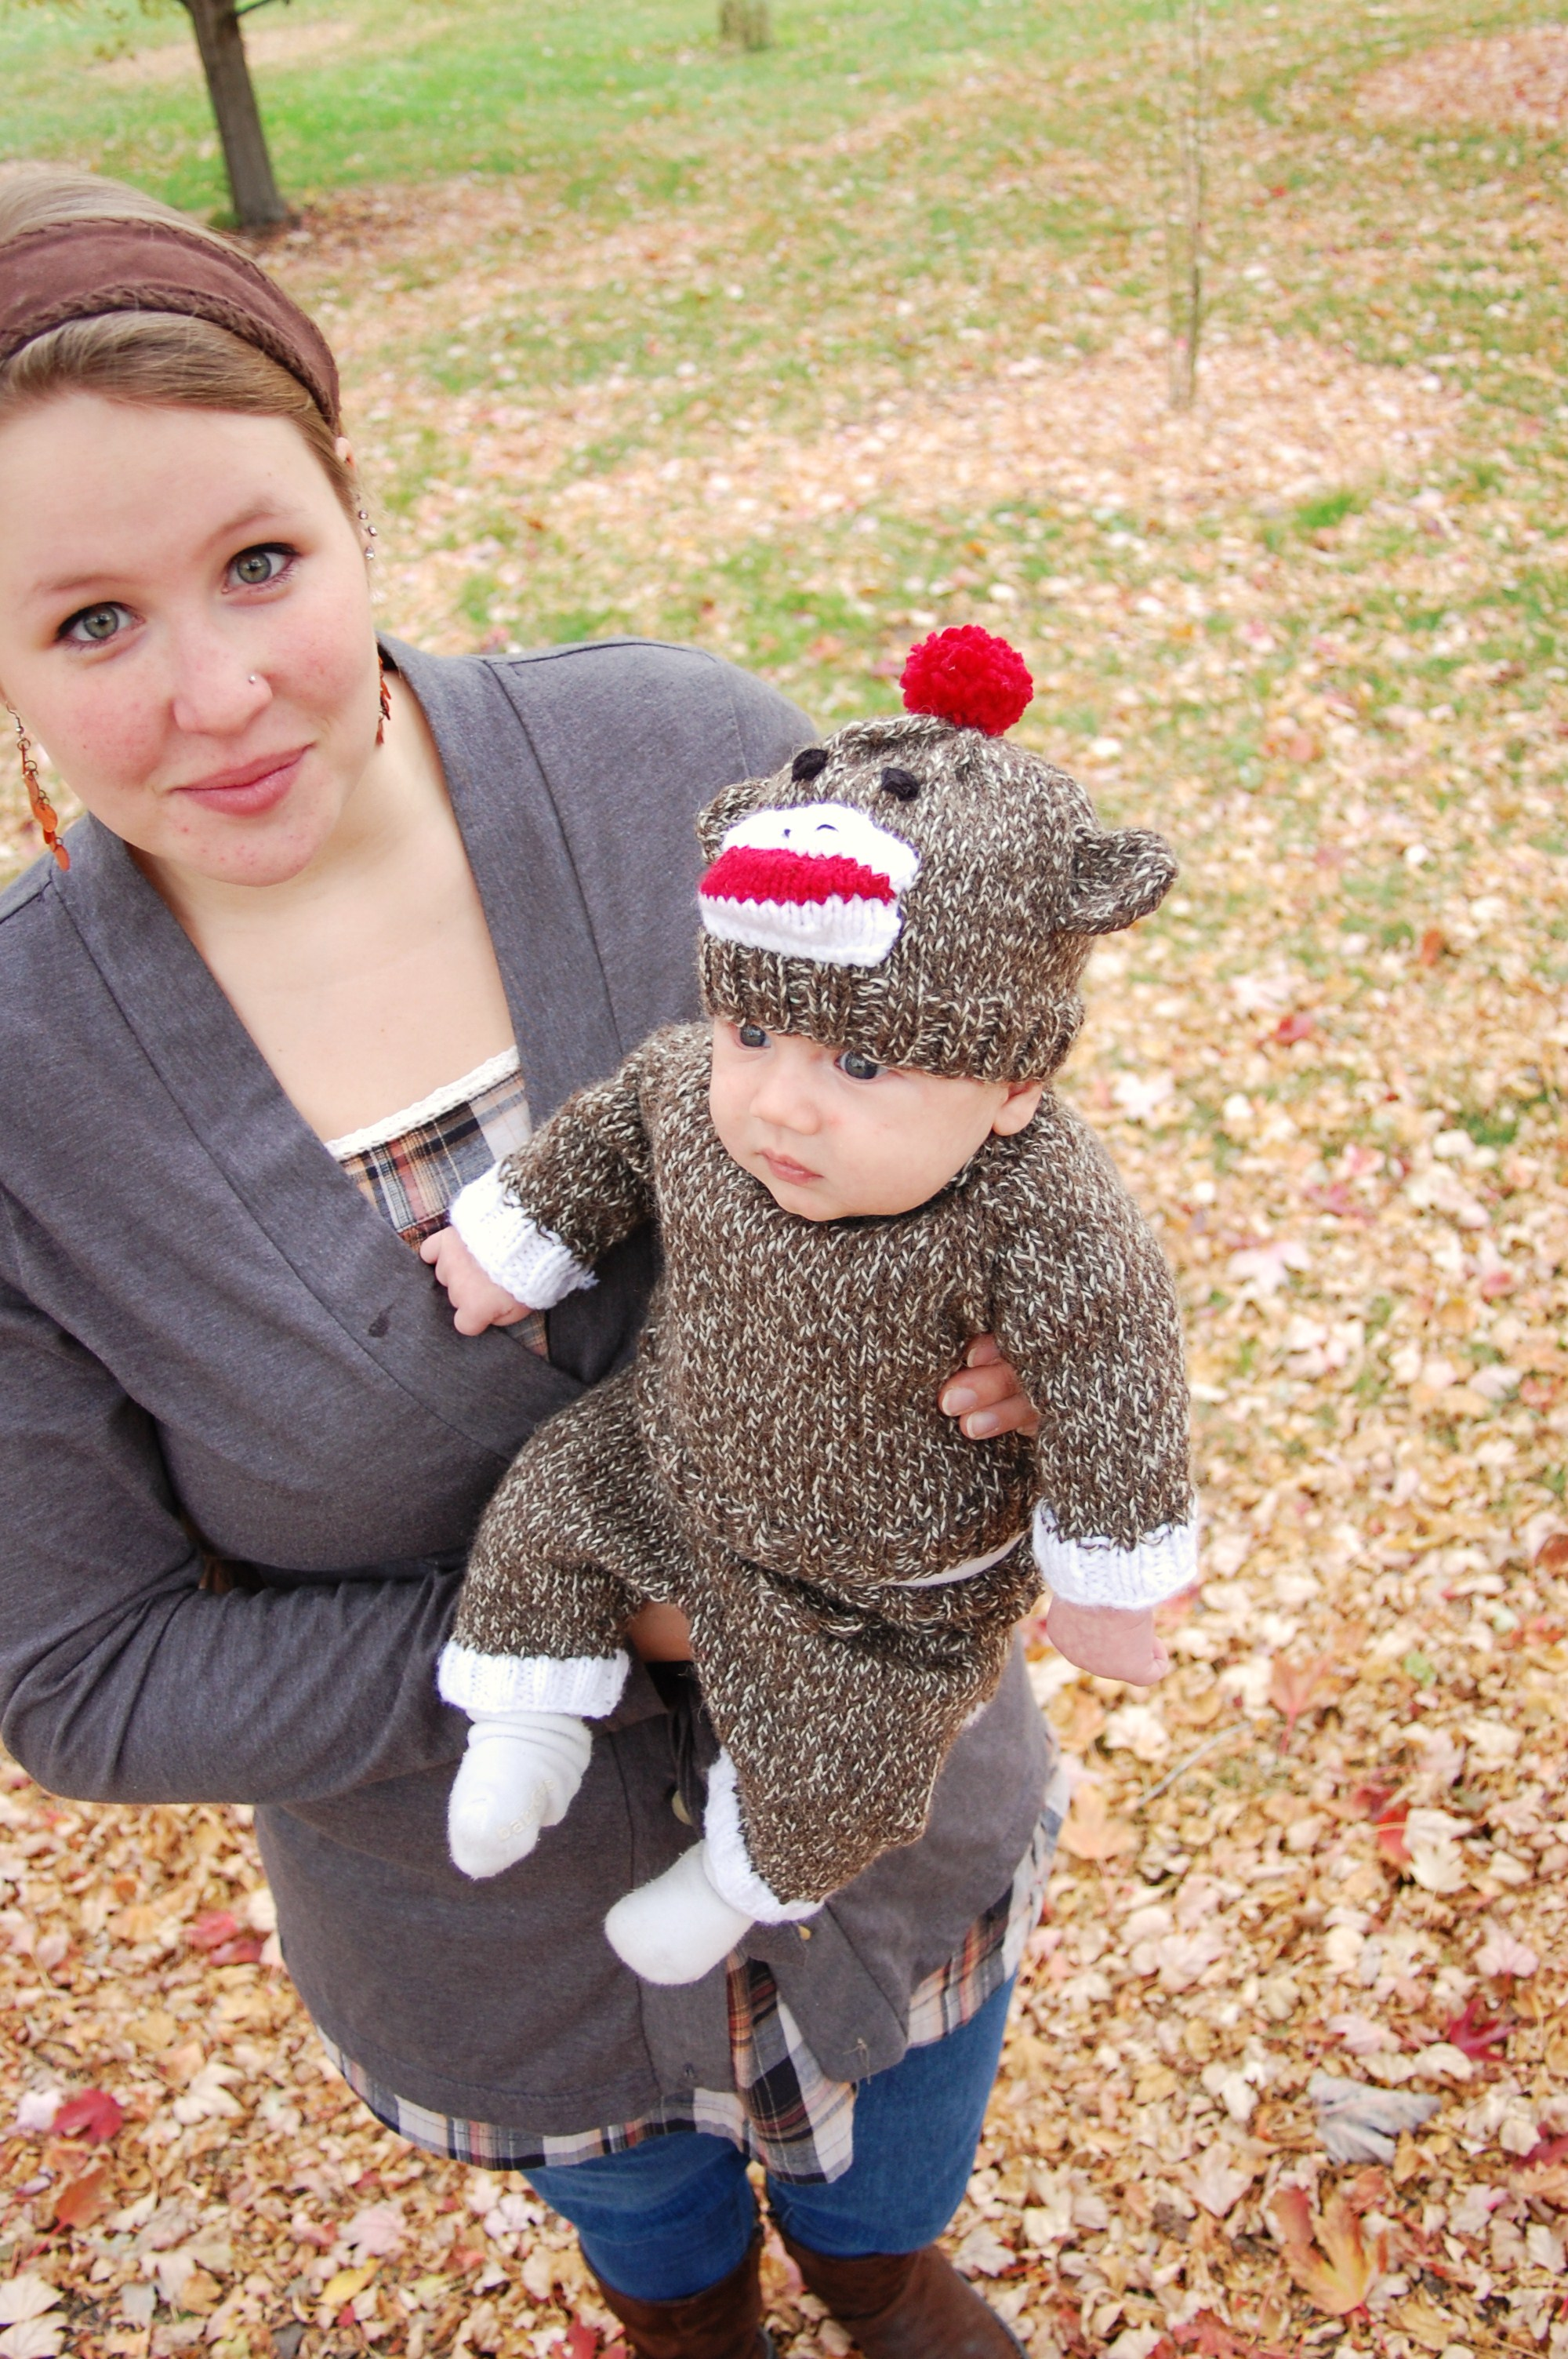 happy halloween from the little sock monkey | knittybutton